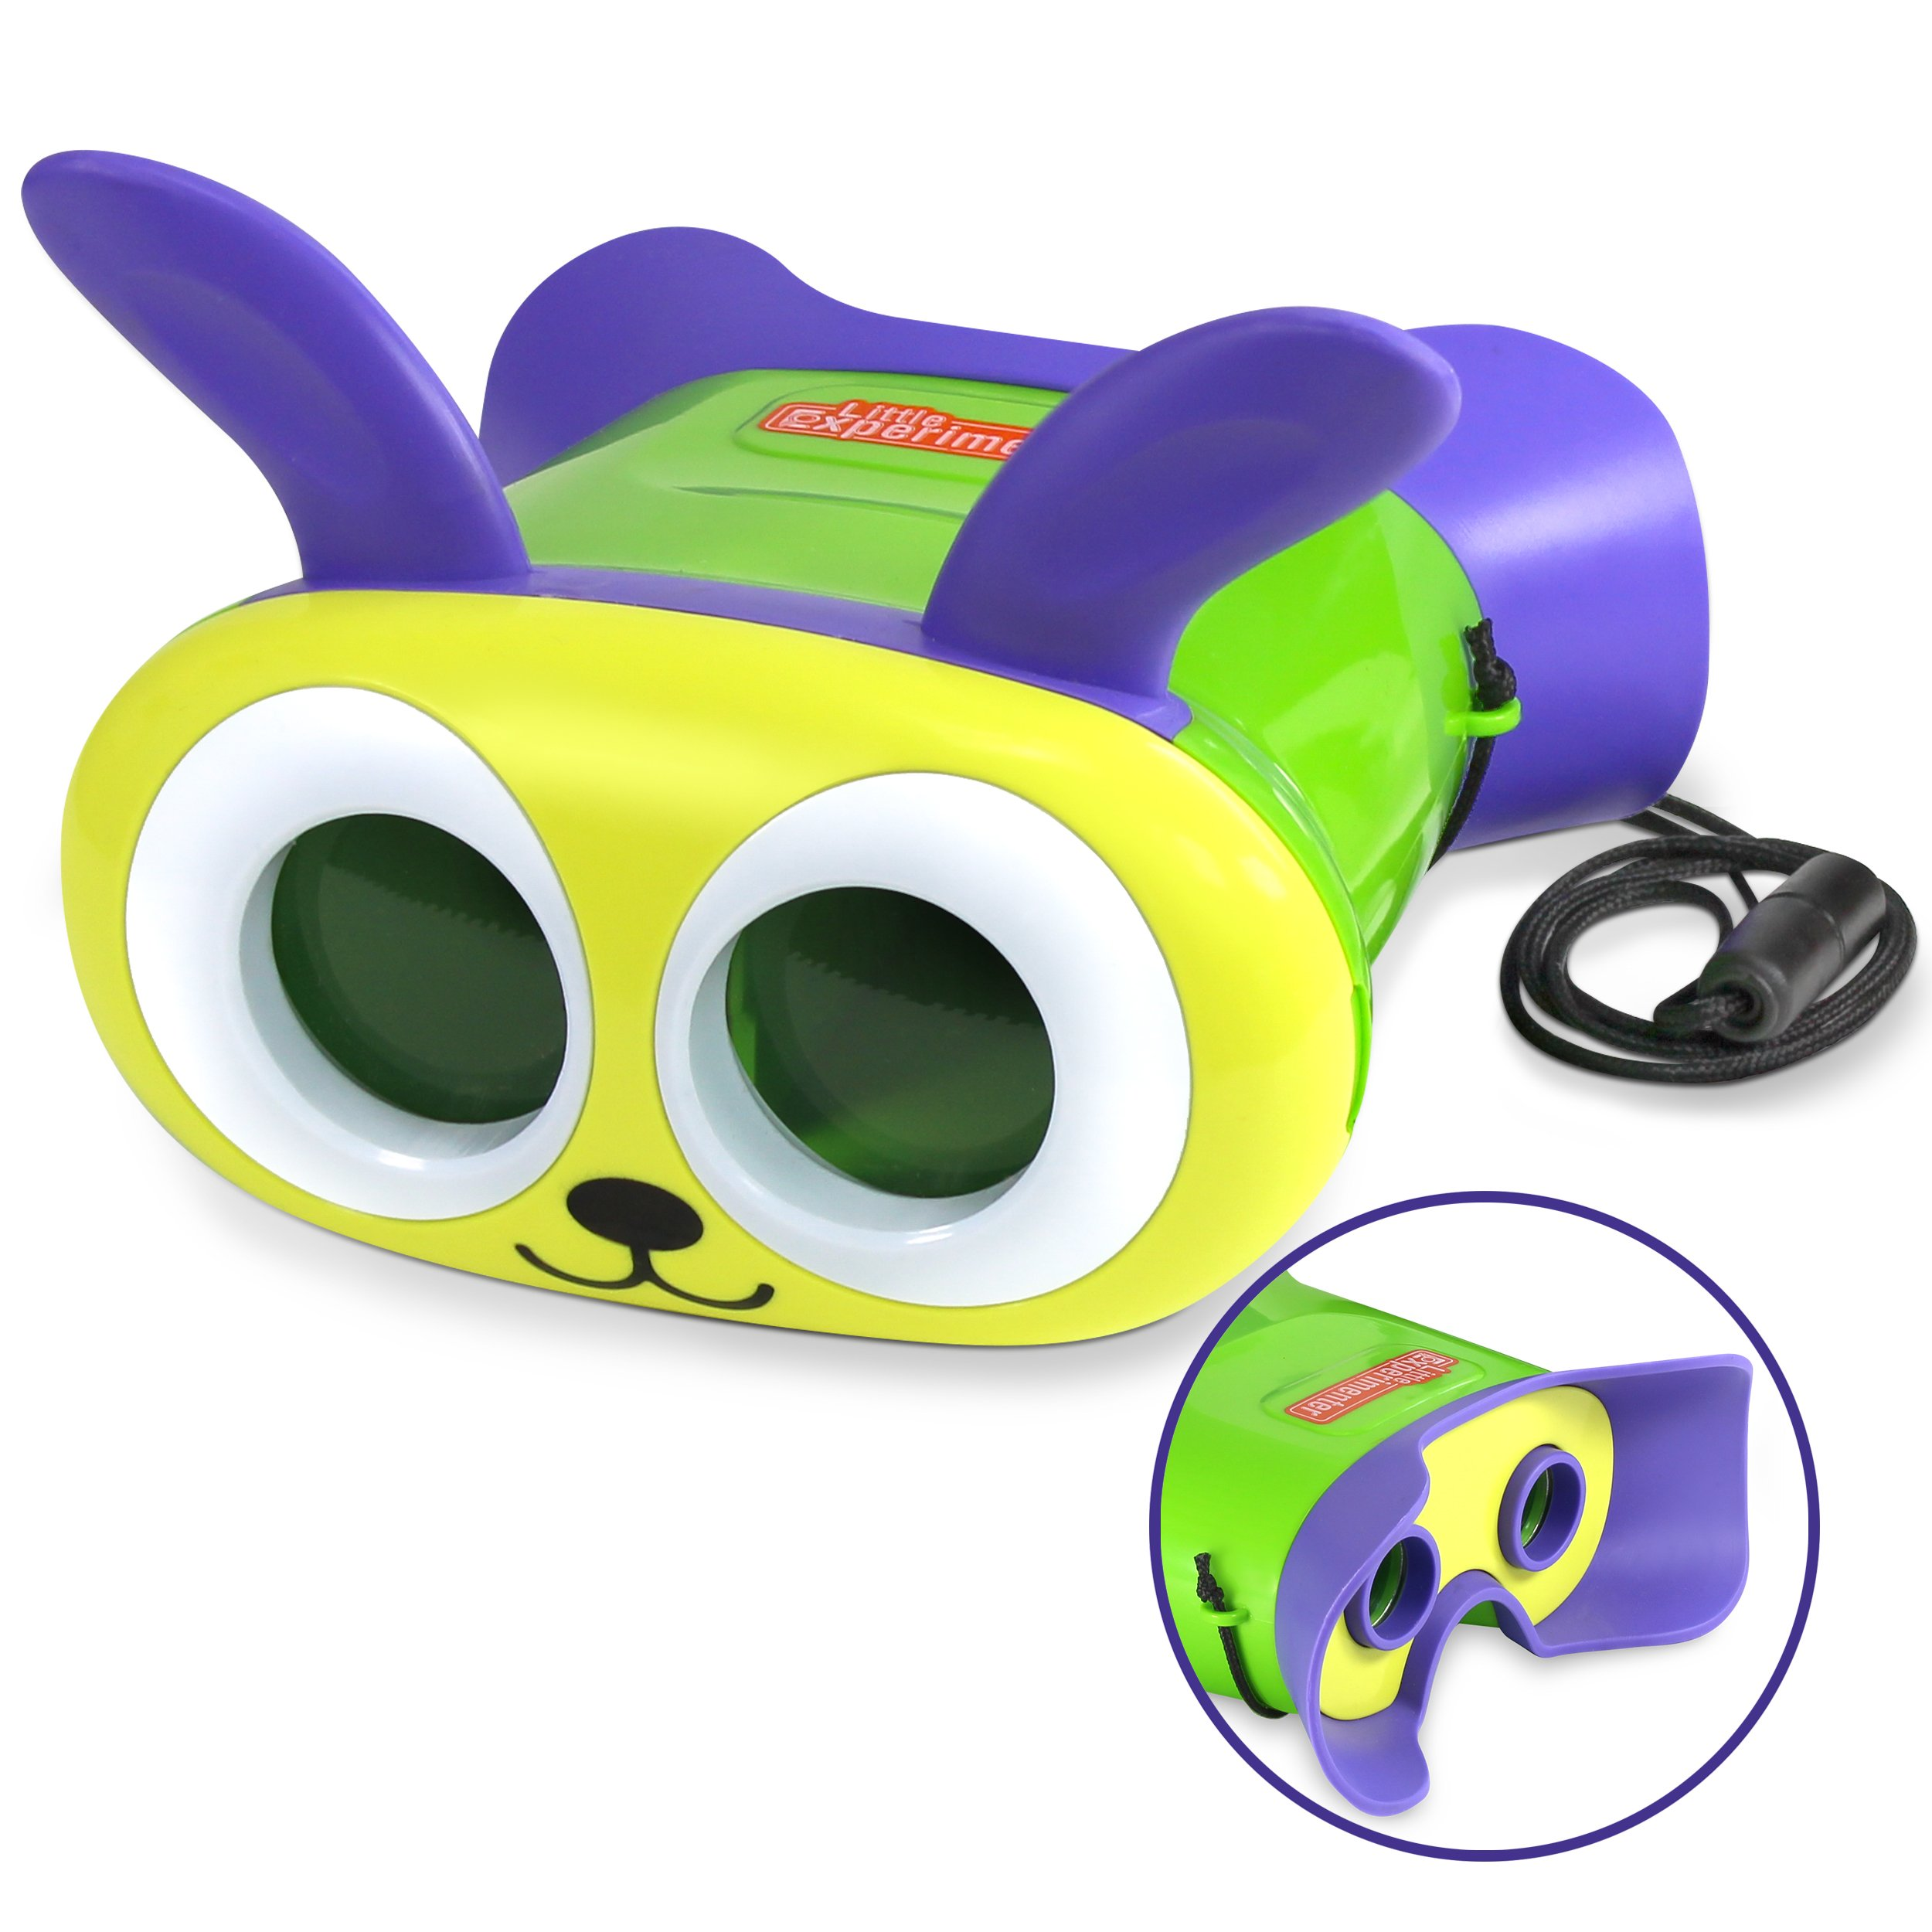 Little Experimenter Bunny Binoculars for Kids - Toy Binoculars for Toddlers - Lightweight & Durable by Little Experimenter